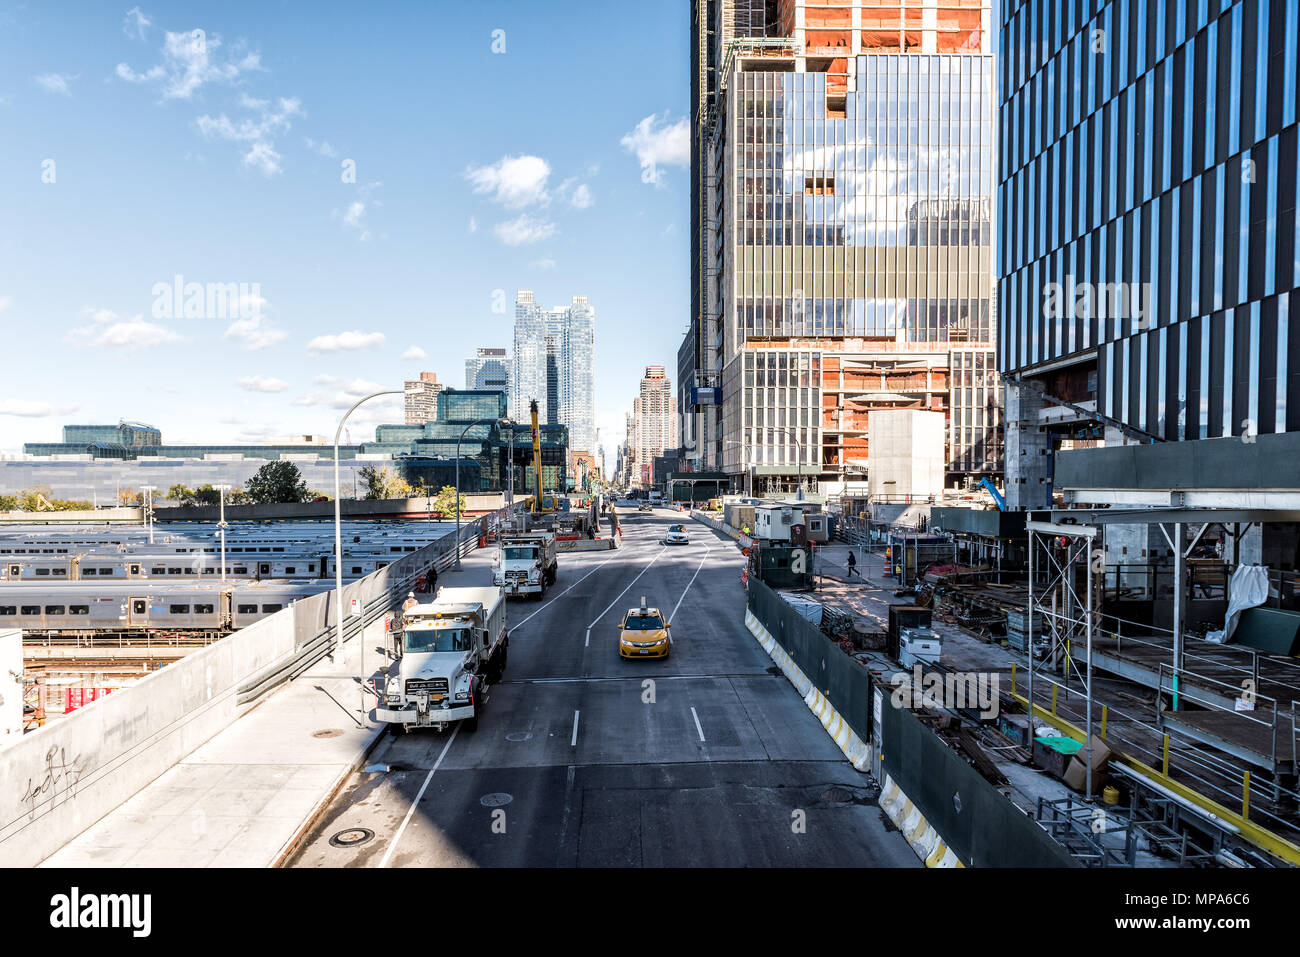 New York City, USA - October 30, 2017: View of the Hudson Yards train depot and building development from the High Line, an elevated urban park in NYC Stock Photo